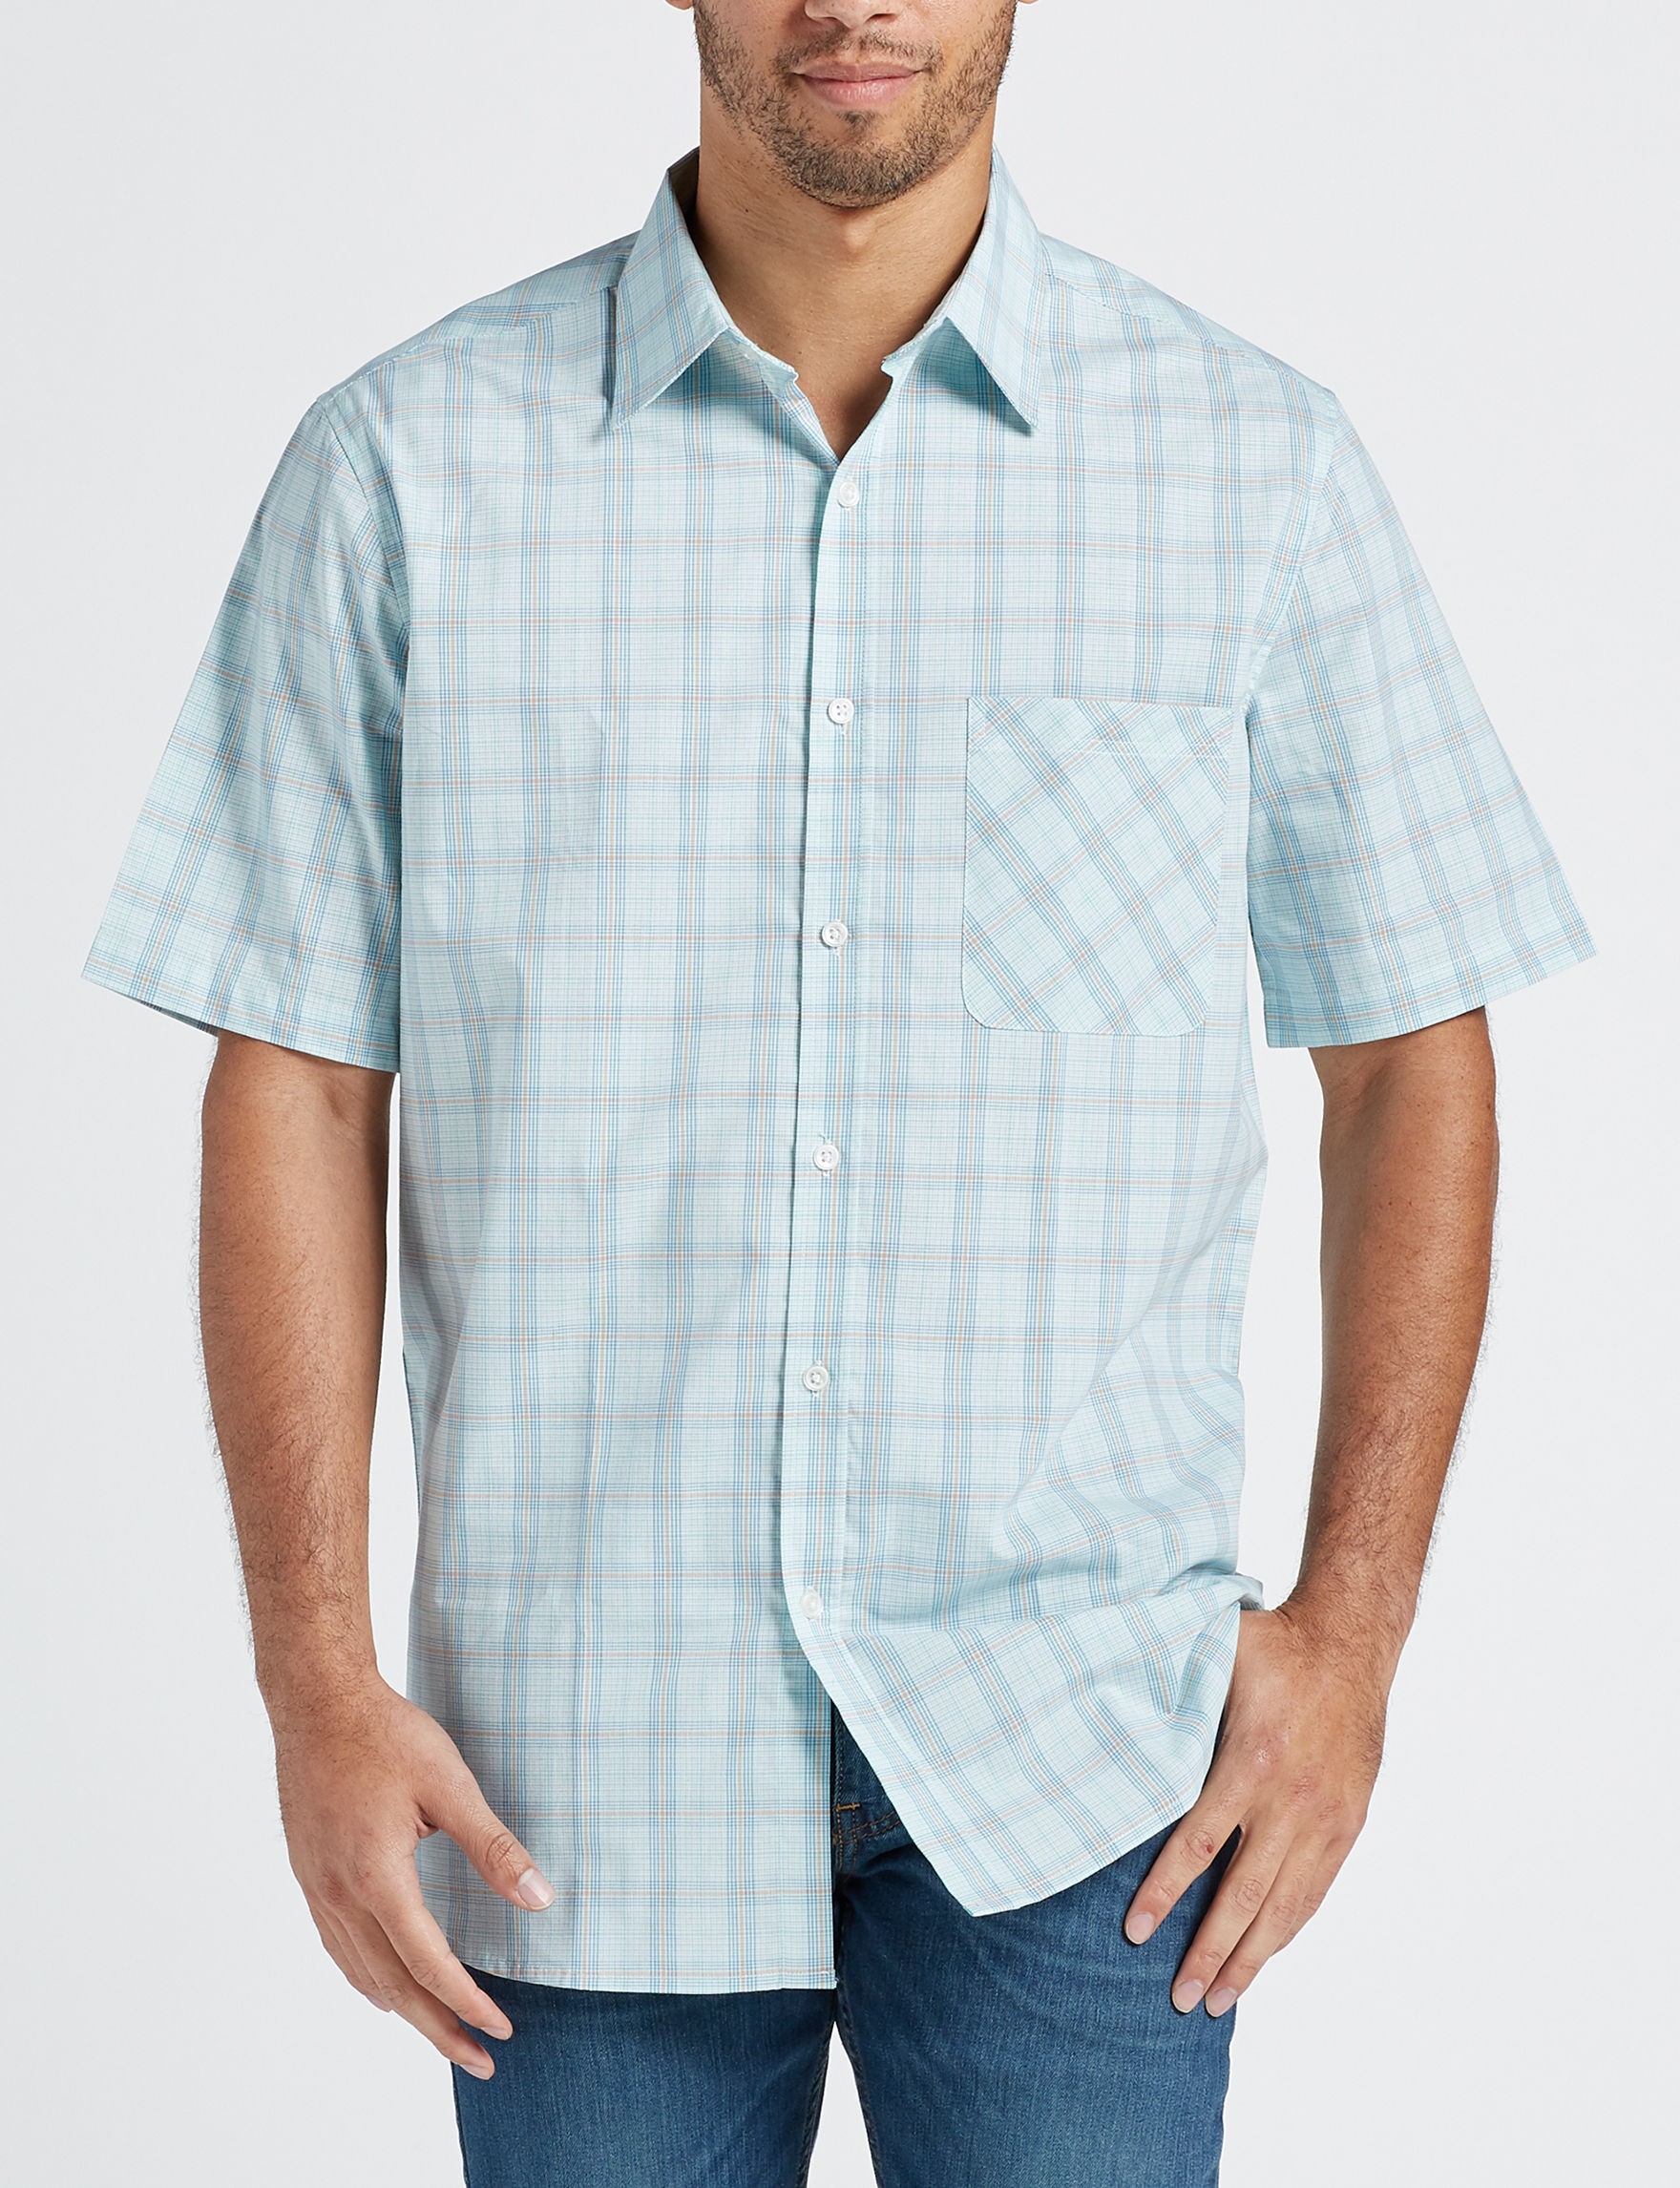 Sun River Blue / Plaid Casual Button Down Shirts